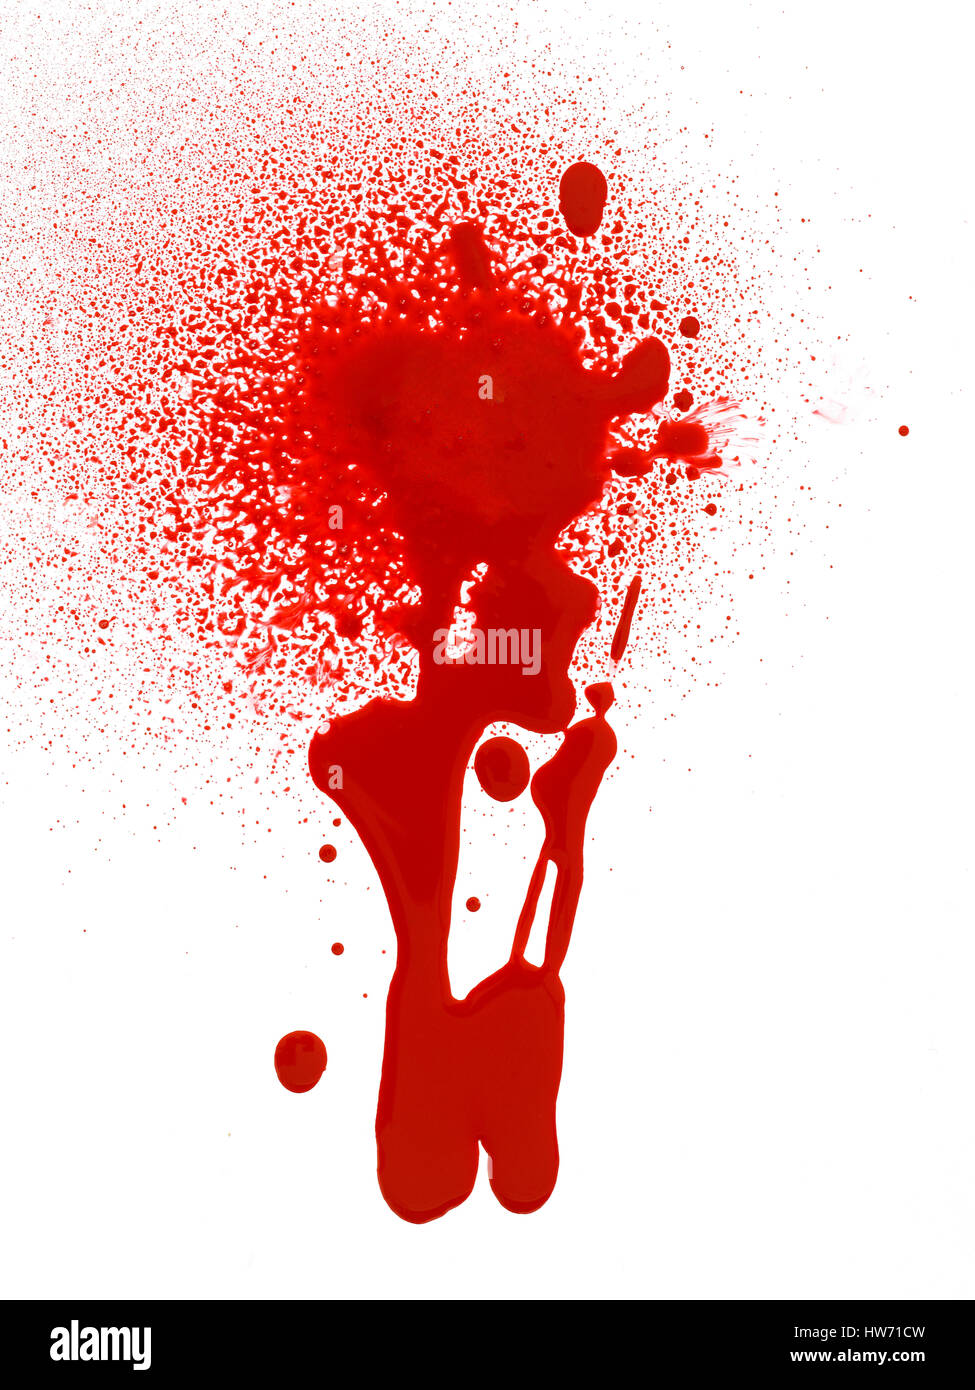 Blood drips and splatter. - Stock Image